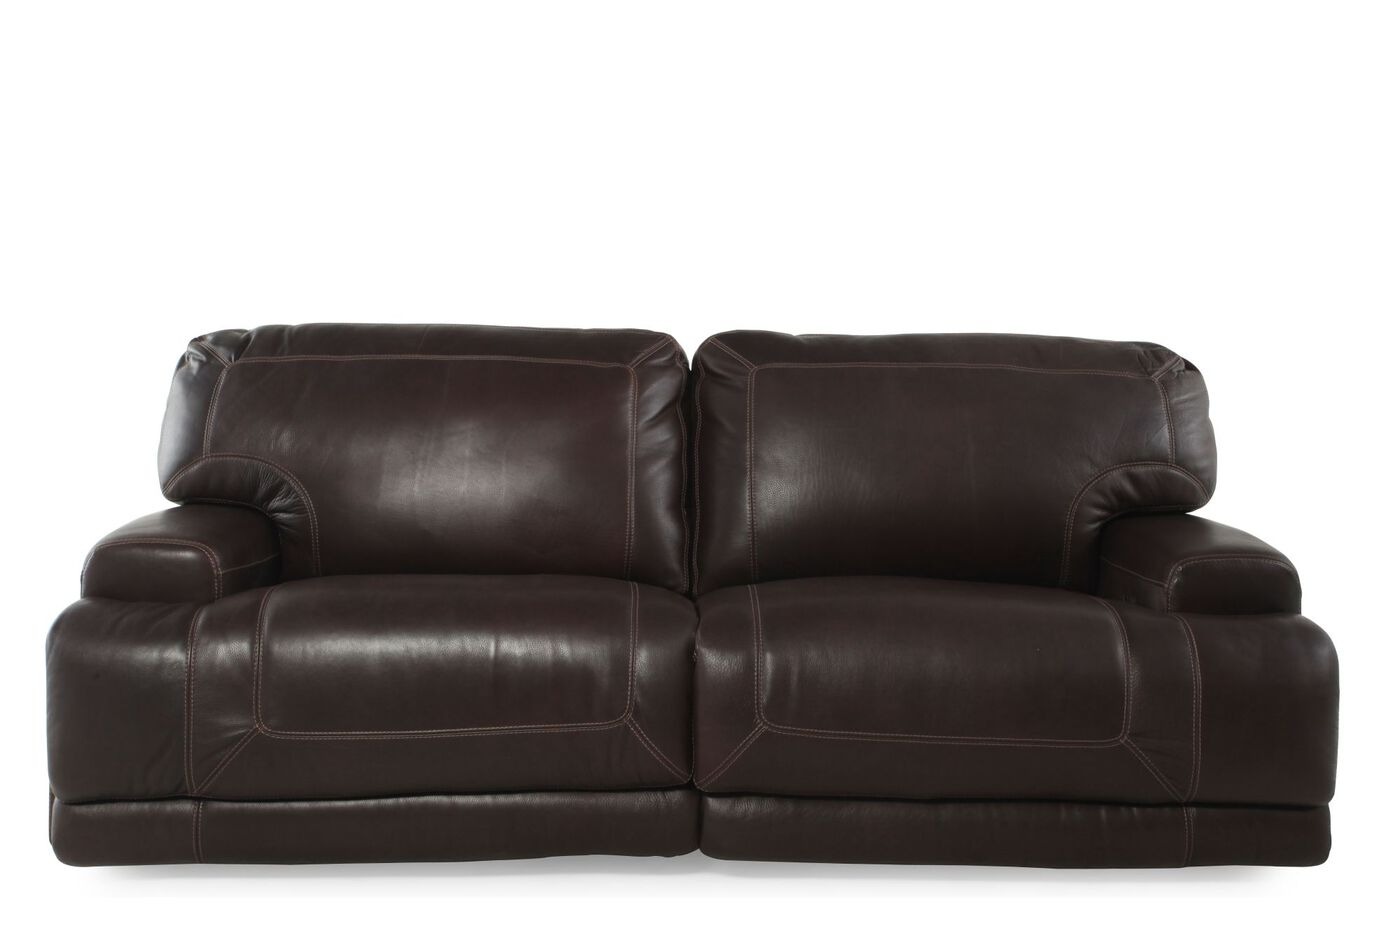 Simon Li Crown Light Walnut Power Reclining Sofa Mathis  : SIMON M0055E04730 WALNUT from www.mathisbrothers.com size 1400 x 933 jpeg 58kB